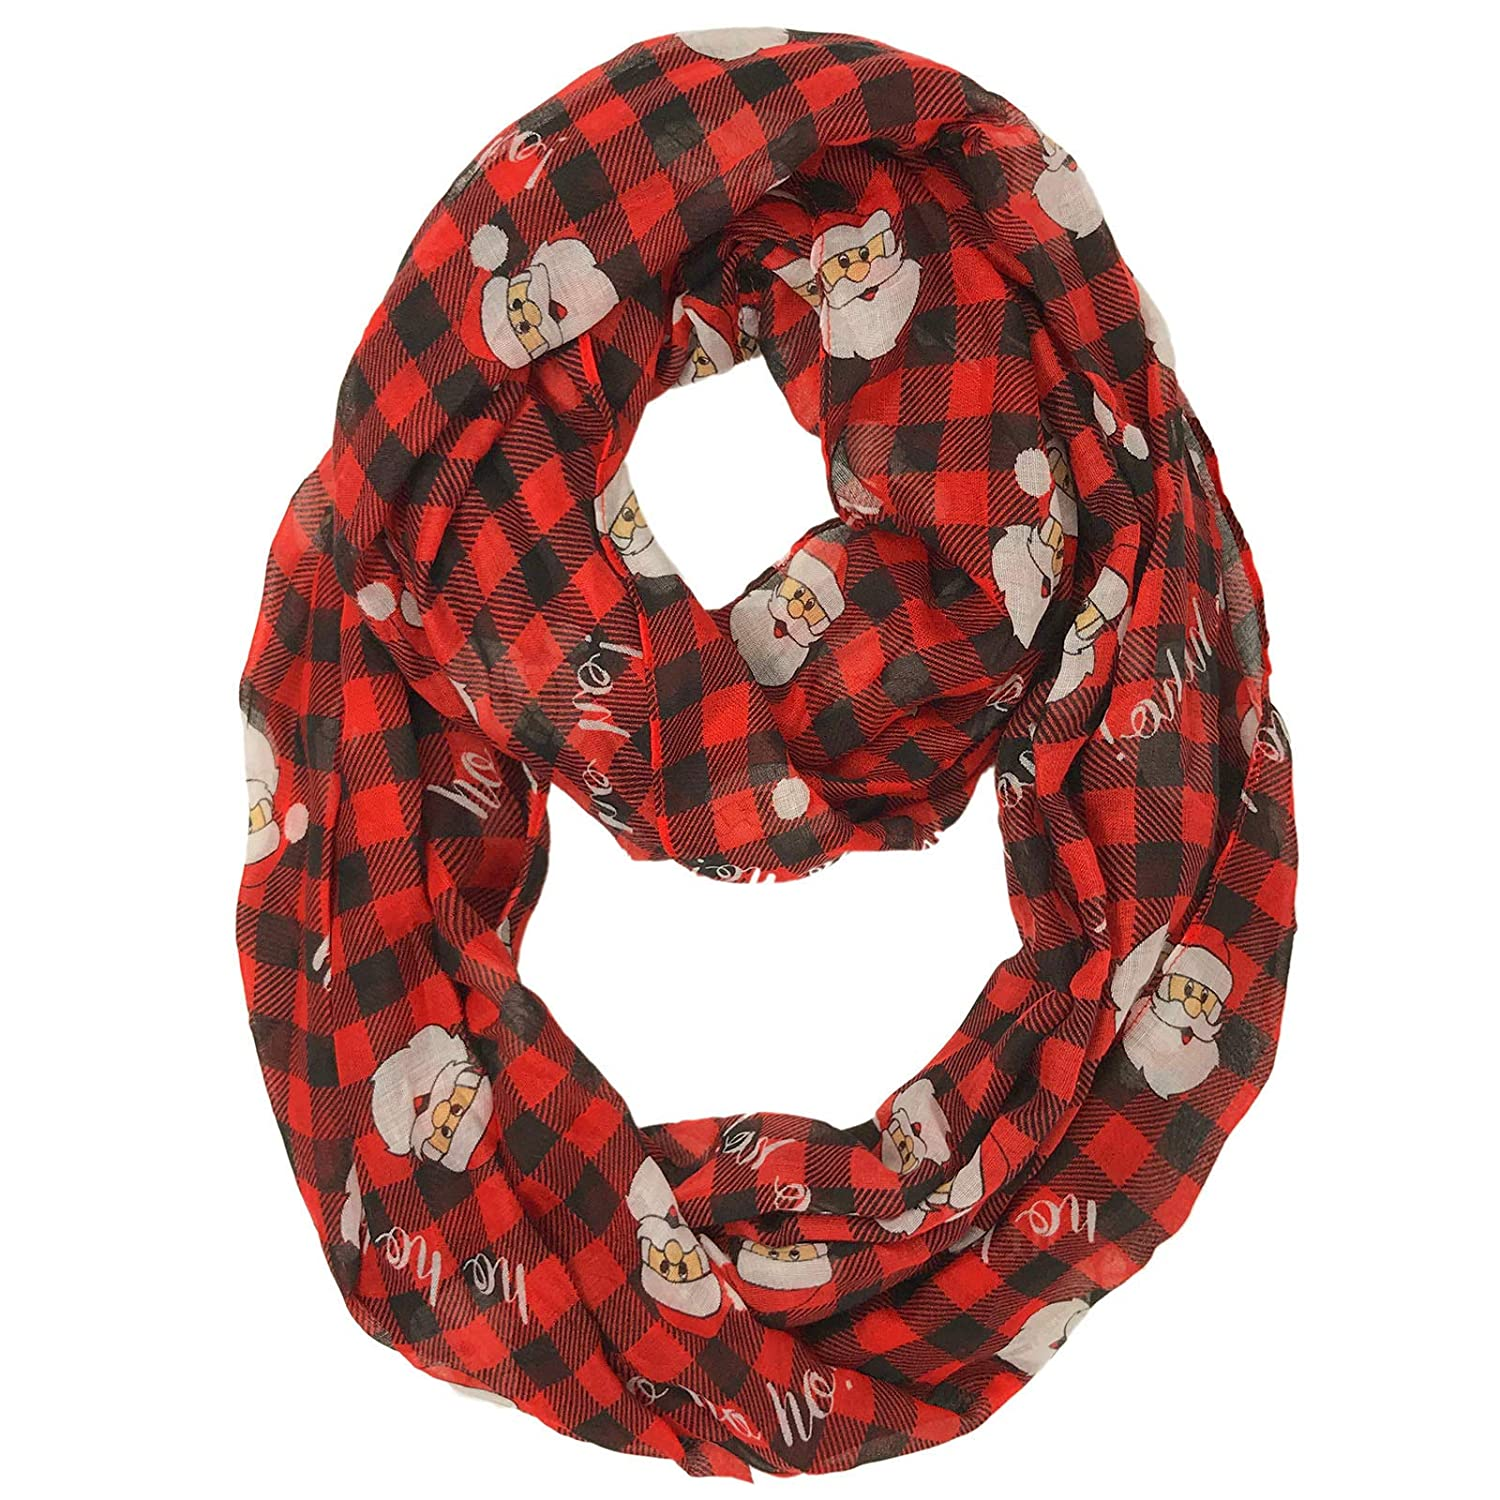 Christmas Holiday Hanukkah Fall Winter Soft Light Loop Infinity Scarf